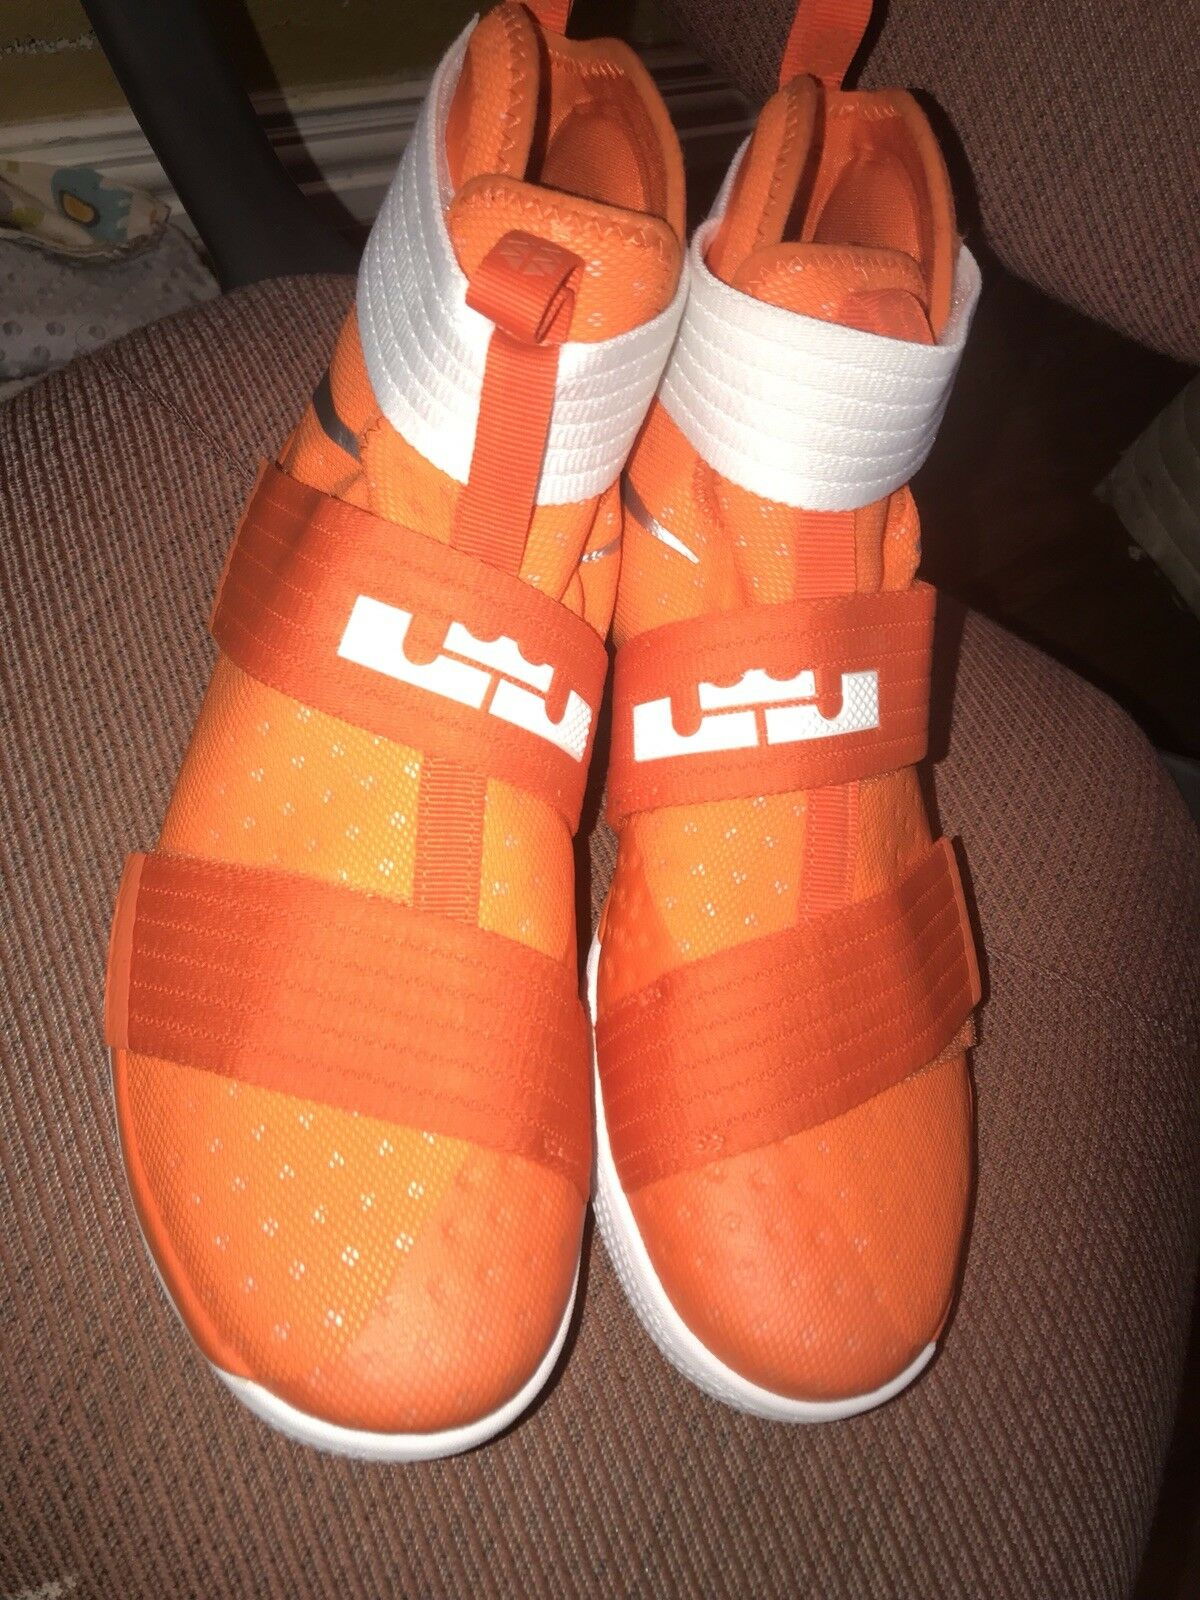 Lebron soldiers 10 Size 11 1 2